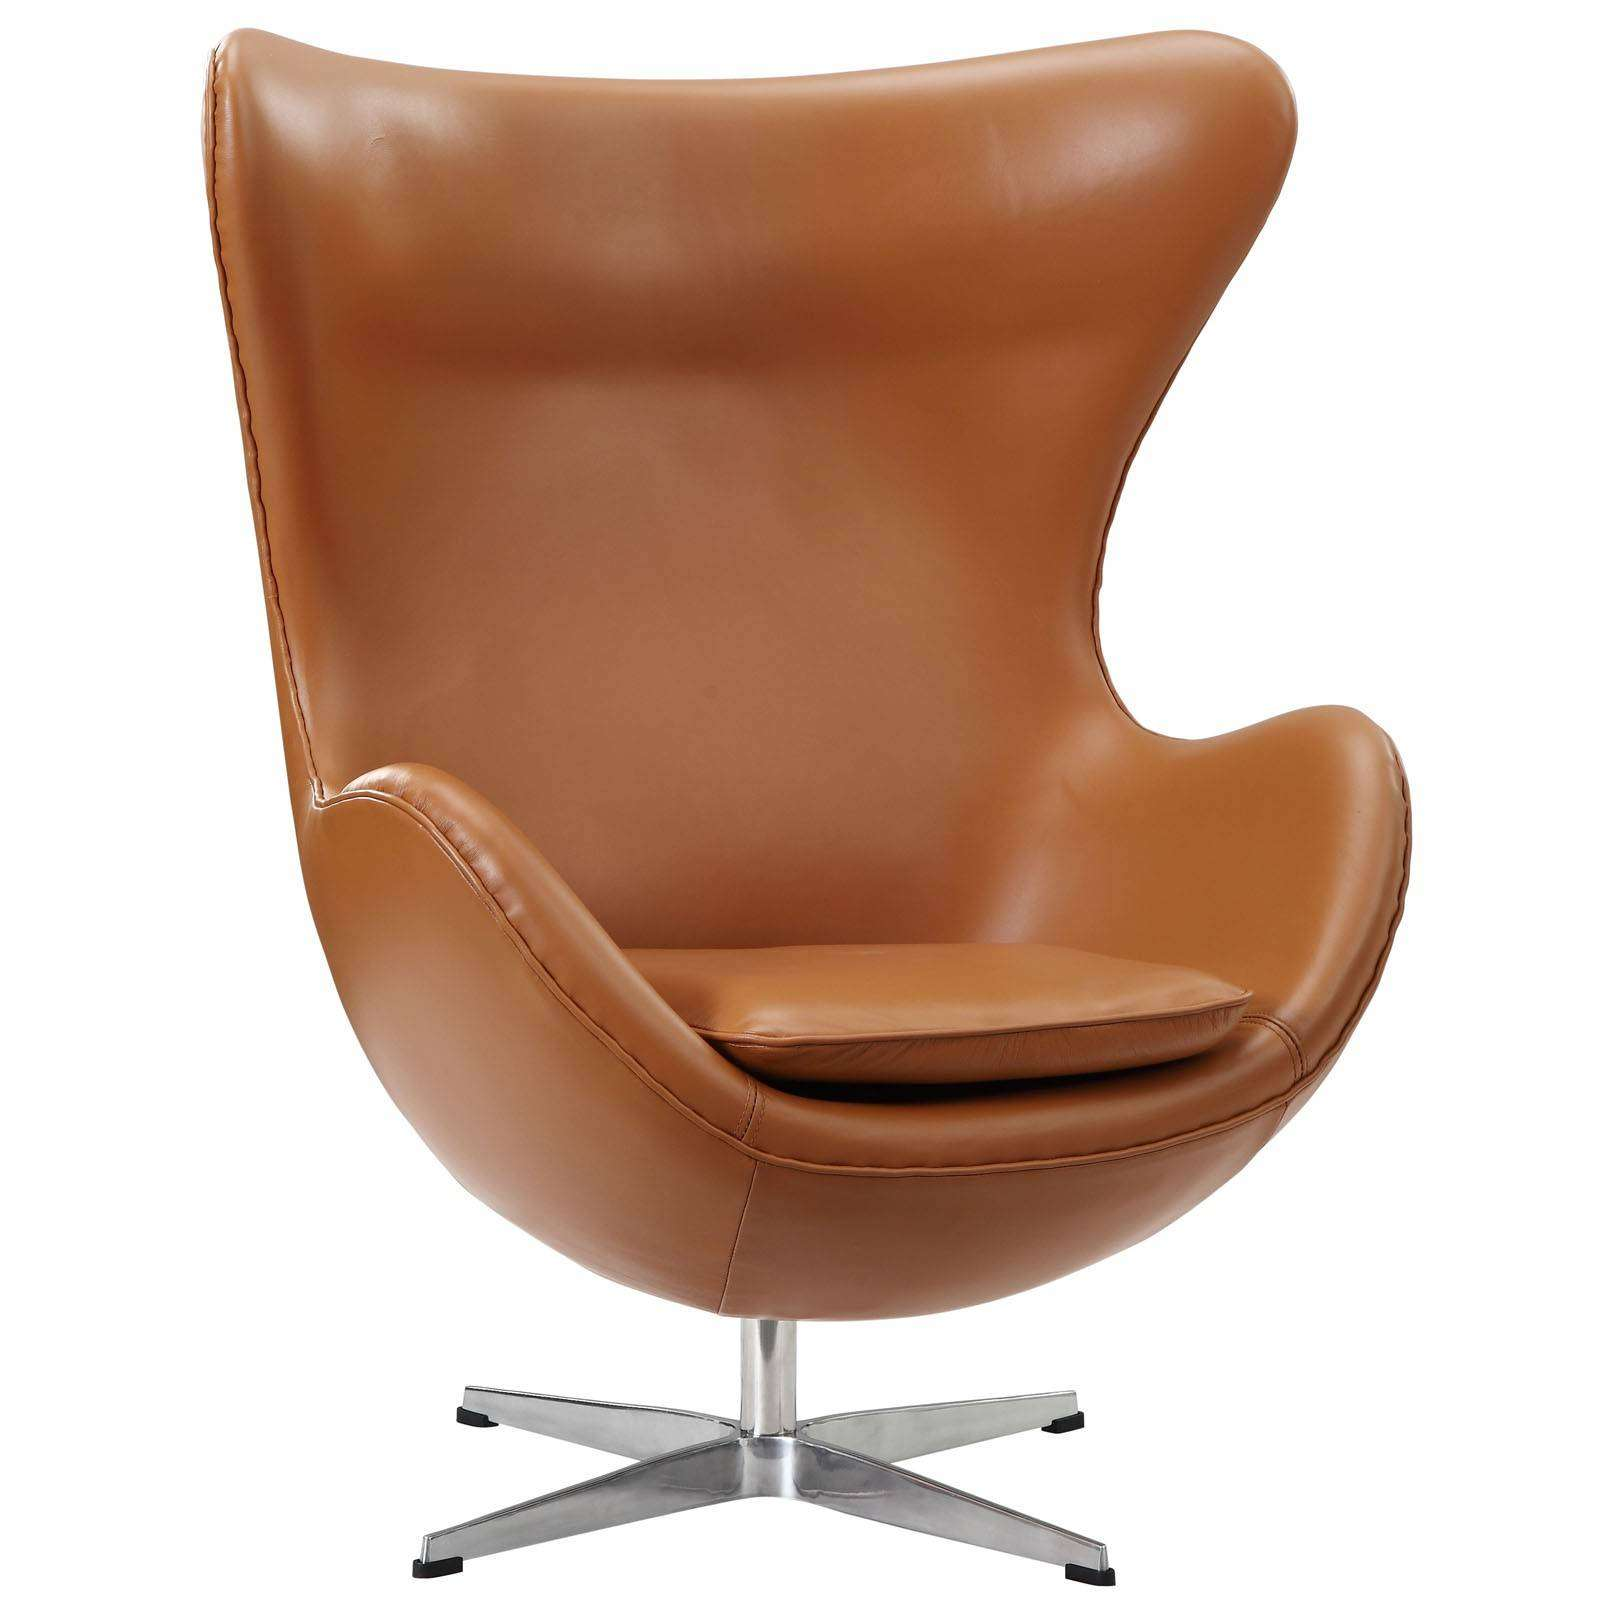 Baby Egg Chair Arne Jacobson Style Egg Chair Leather